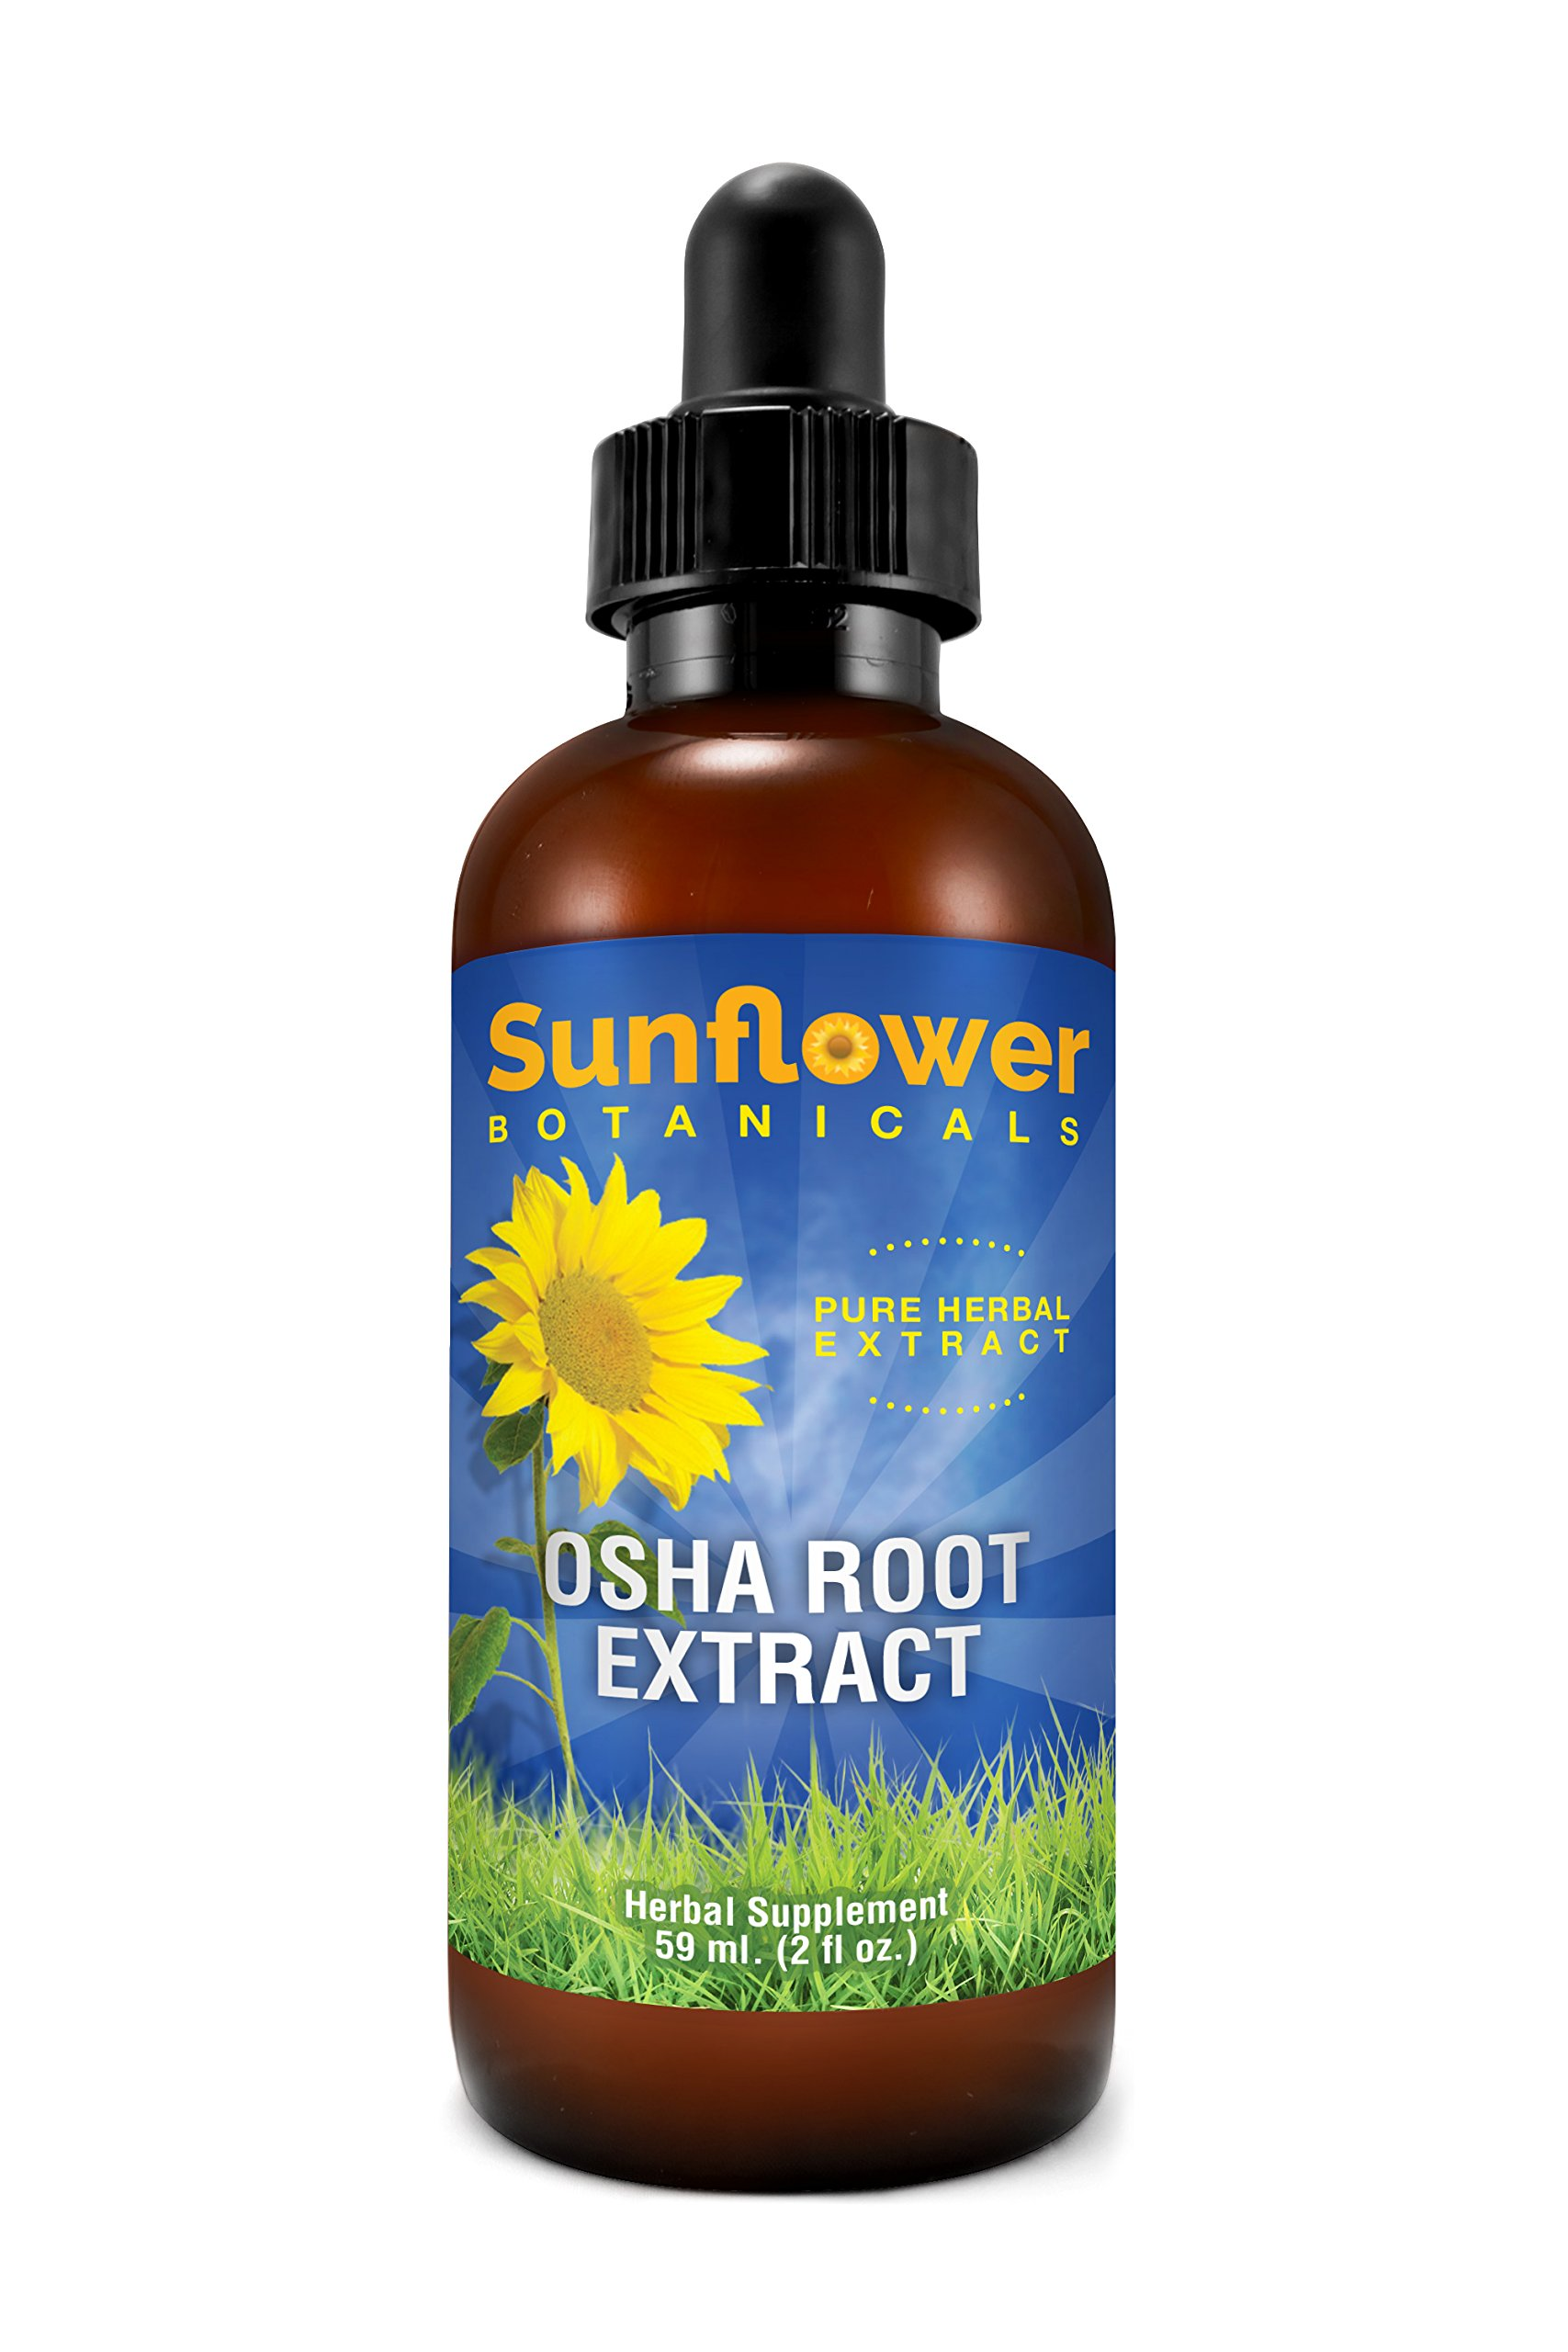 Osha Root Extract, All Natural, 2 Ounces, Dropper-Top Glass Bottle